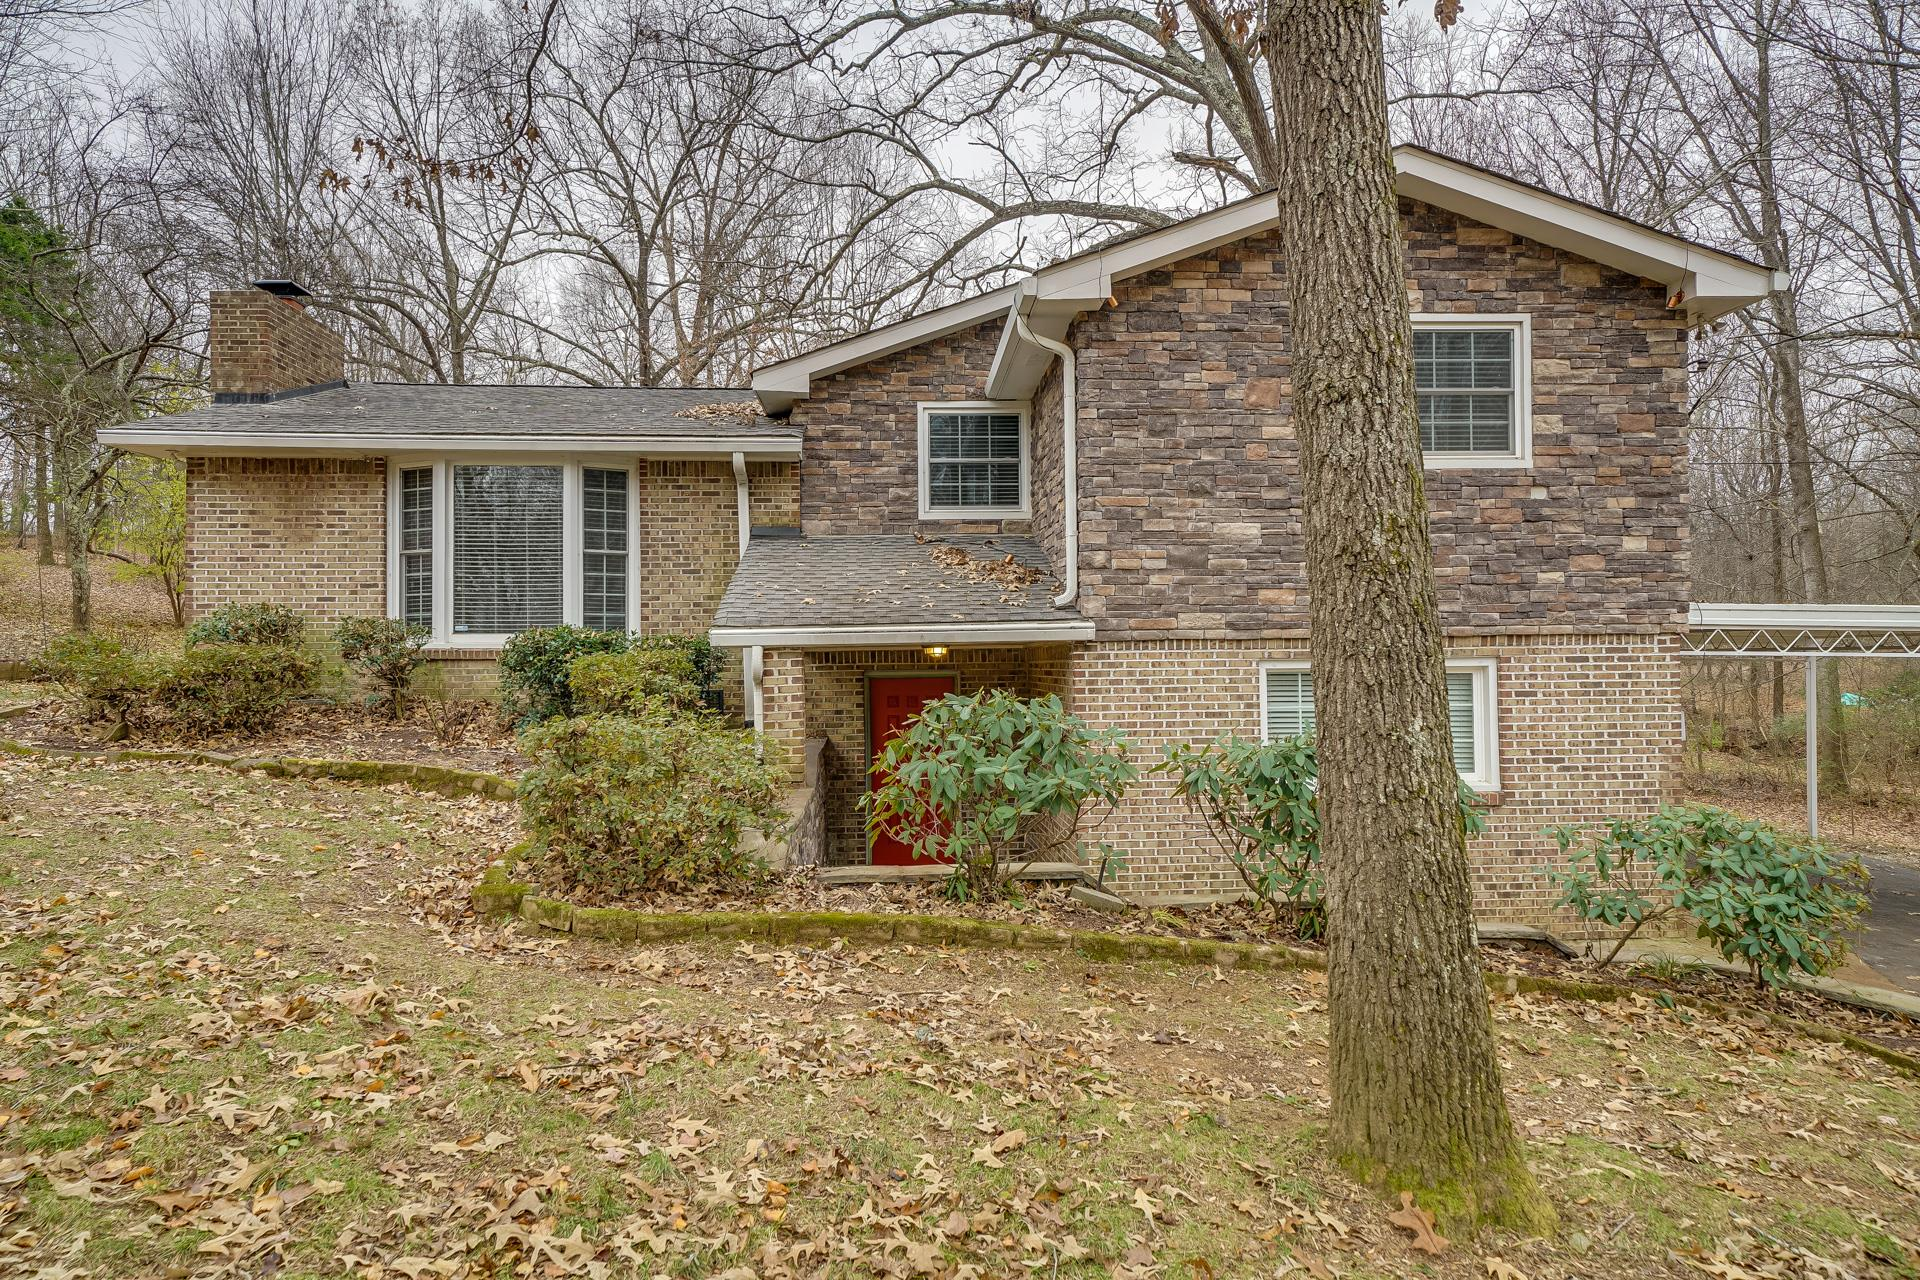 7216 Sutton Pl, Fairview in Williamson County County, TN 37062 Home for Sale